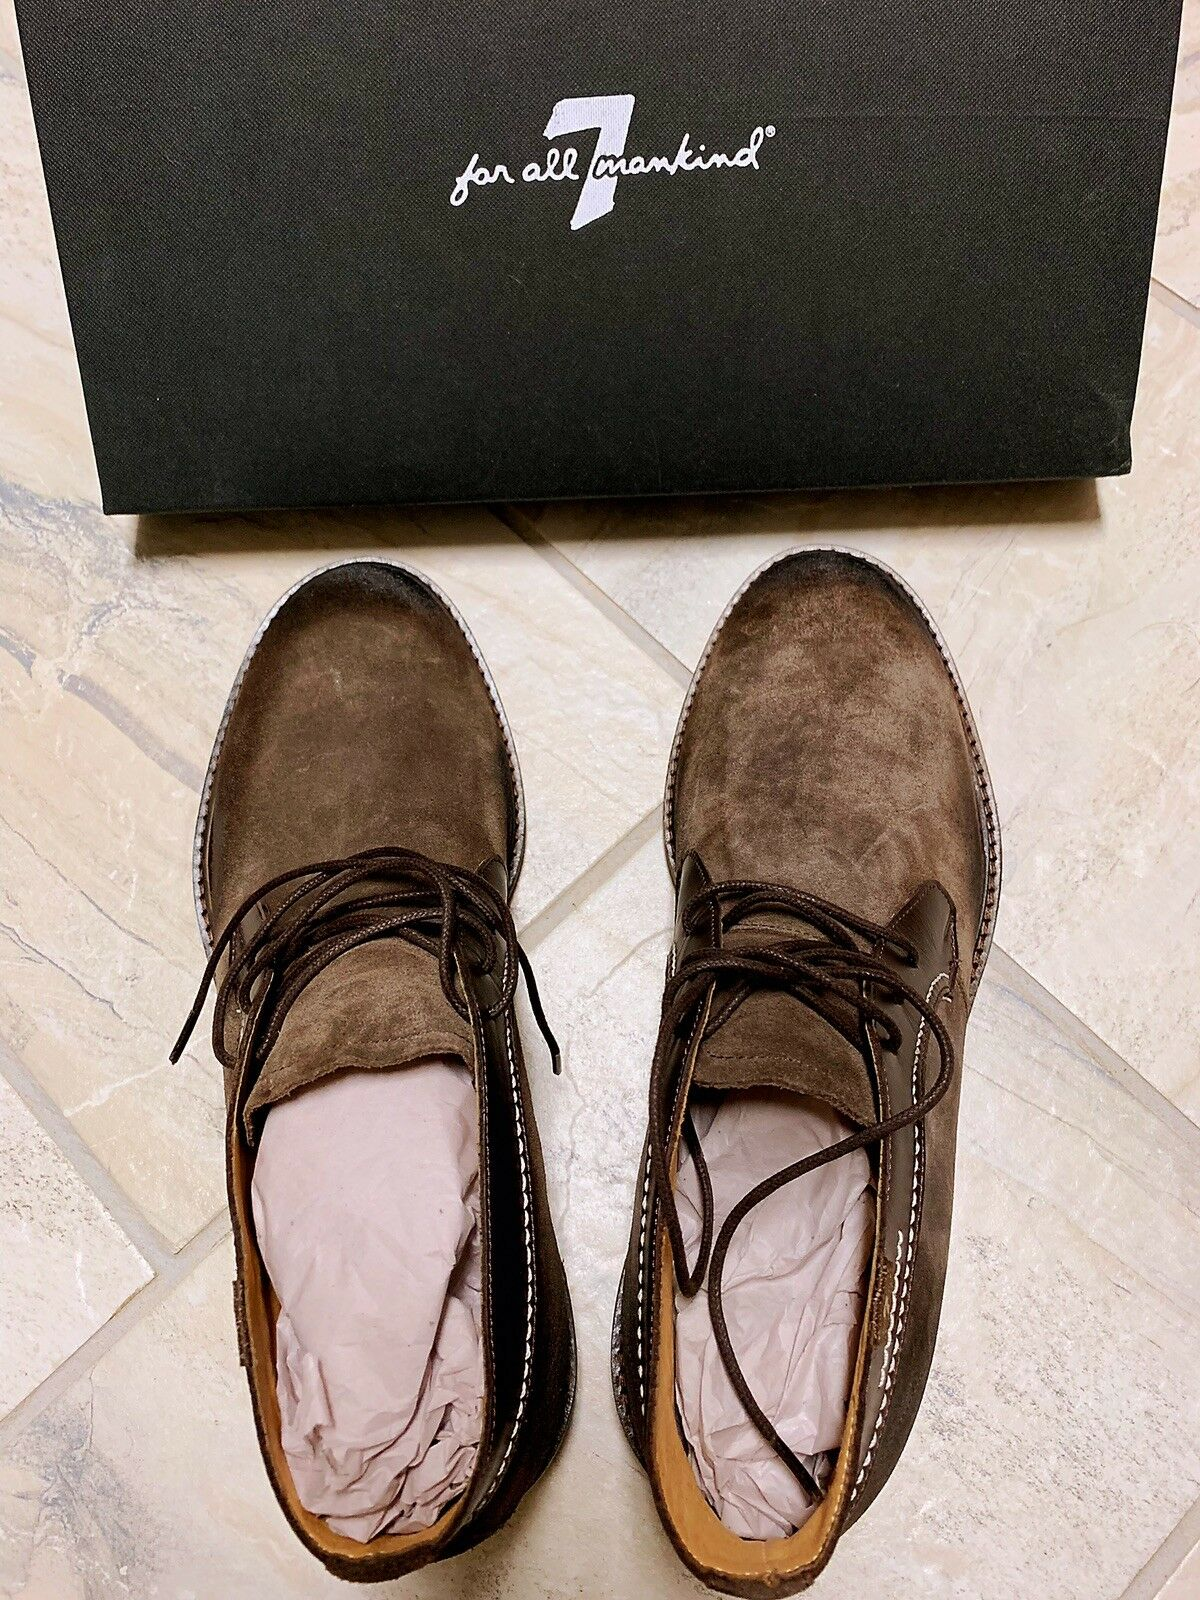 7 For All Mankind Men Cruz Suede Ankle Boots Dark Brown New with Box Size 8.5